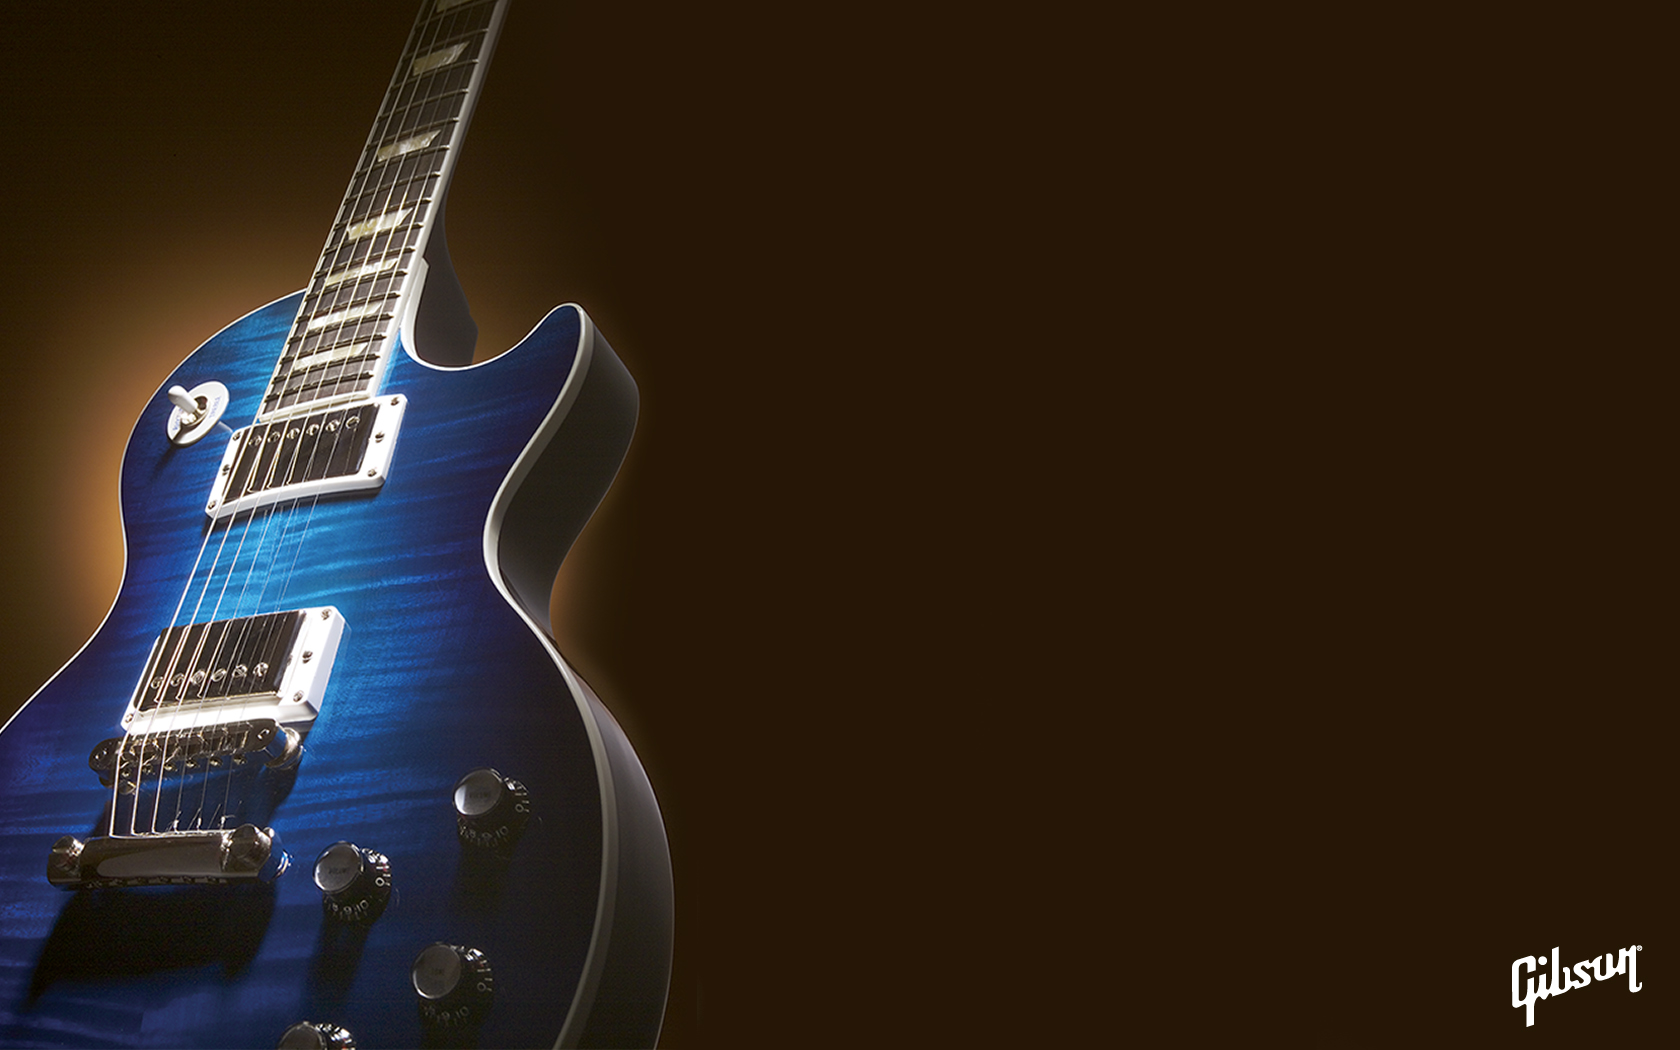 Gibson Les Paul Wallpaper By Cmdry72 On Deviantart